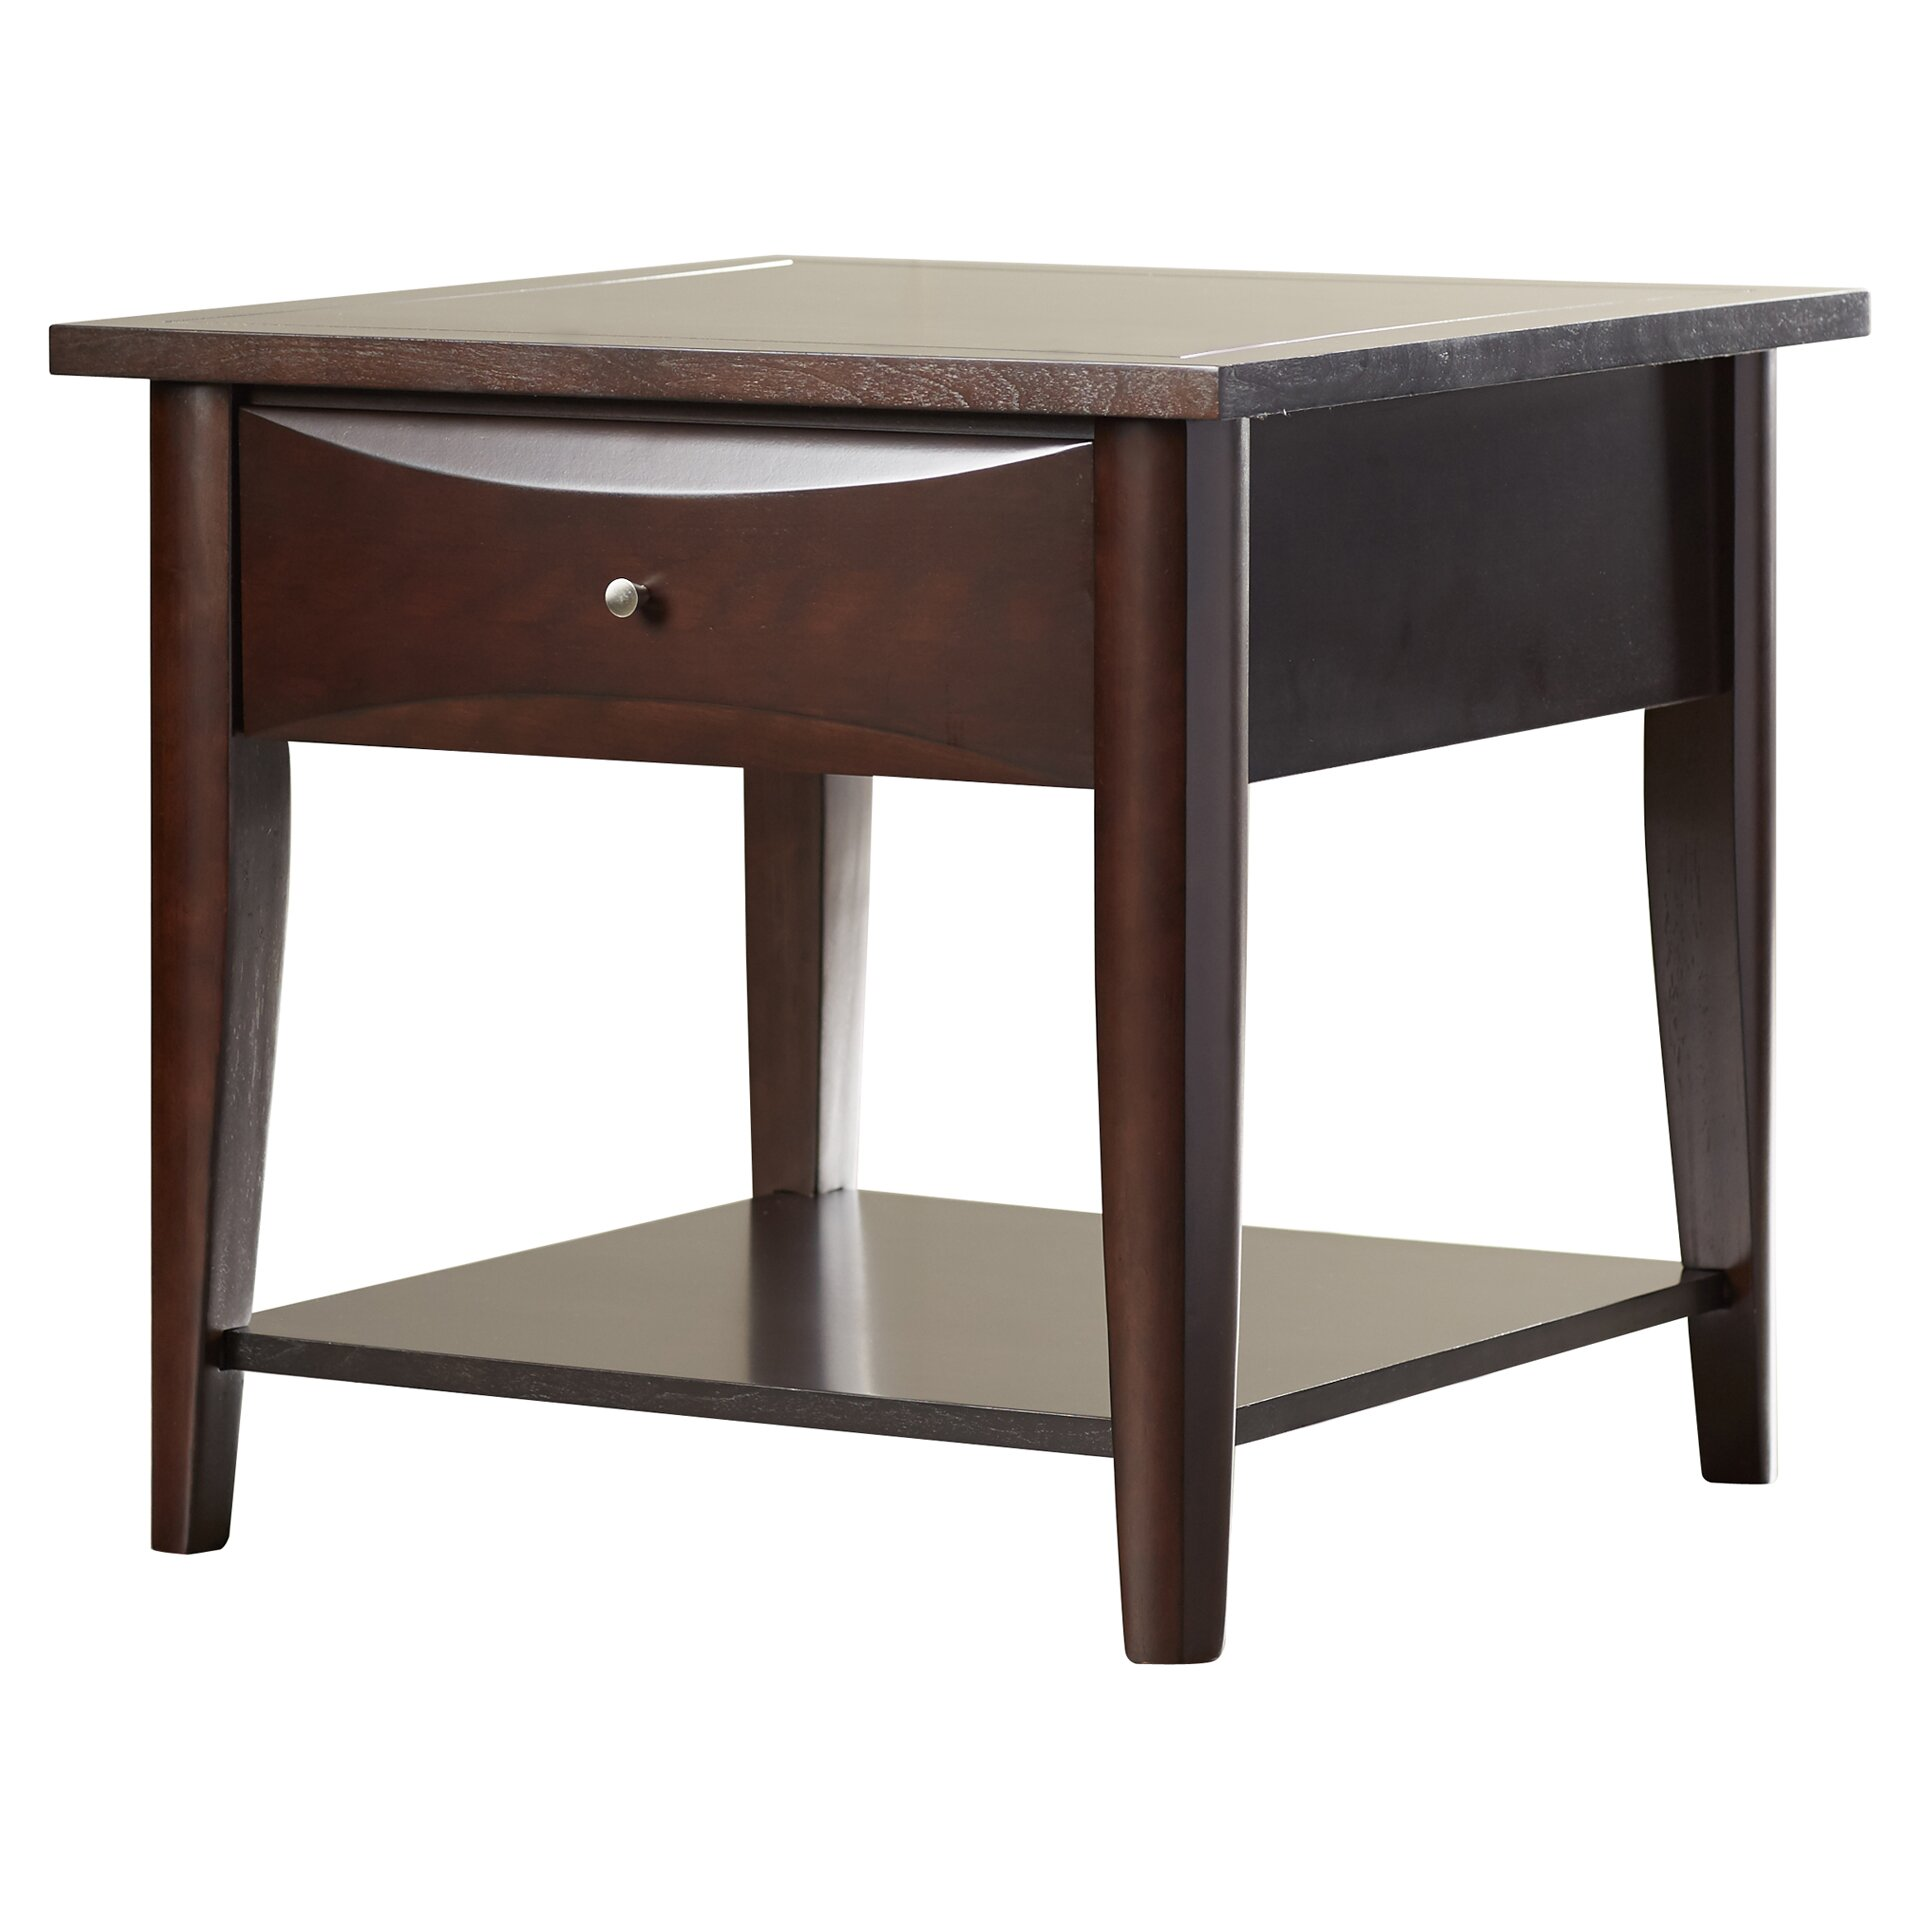 Wade logan humbermede end table reviews wayfair supply